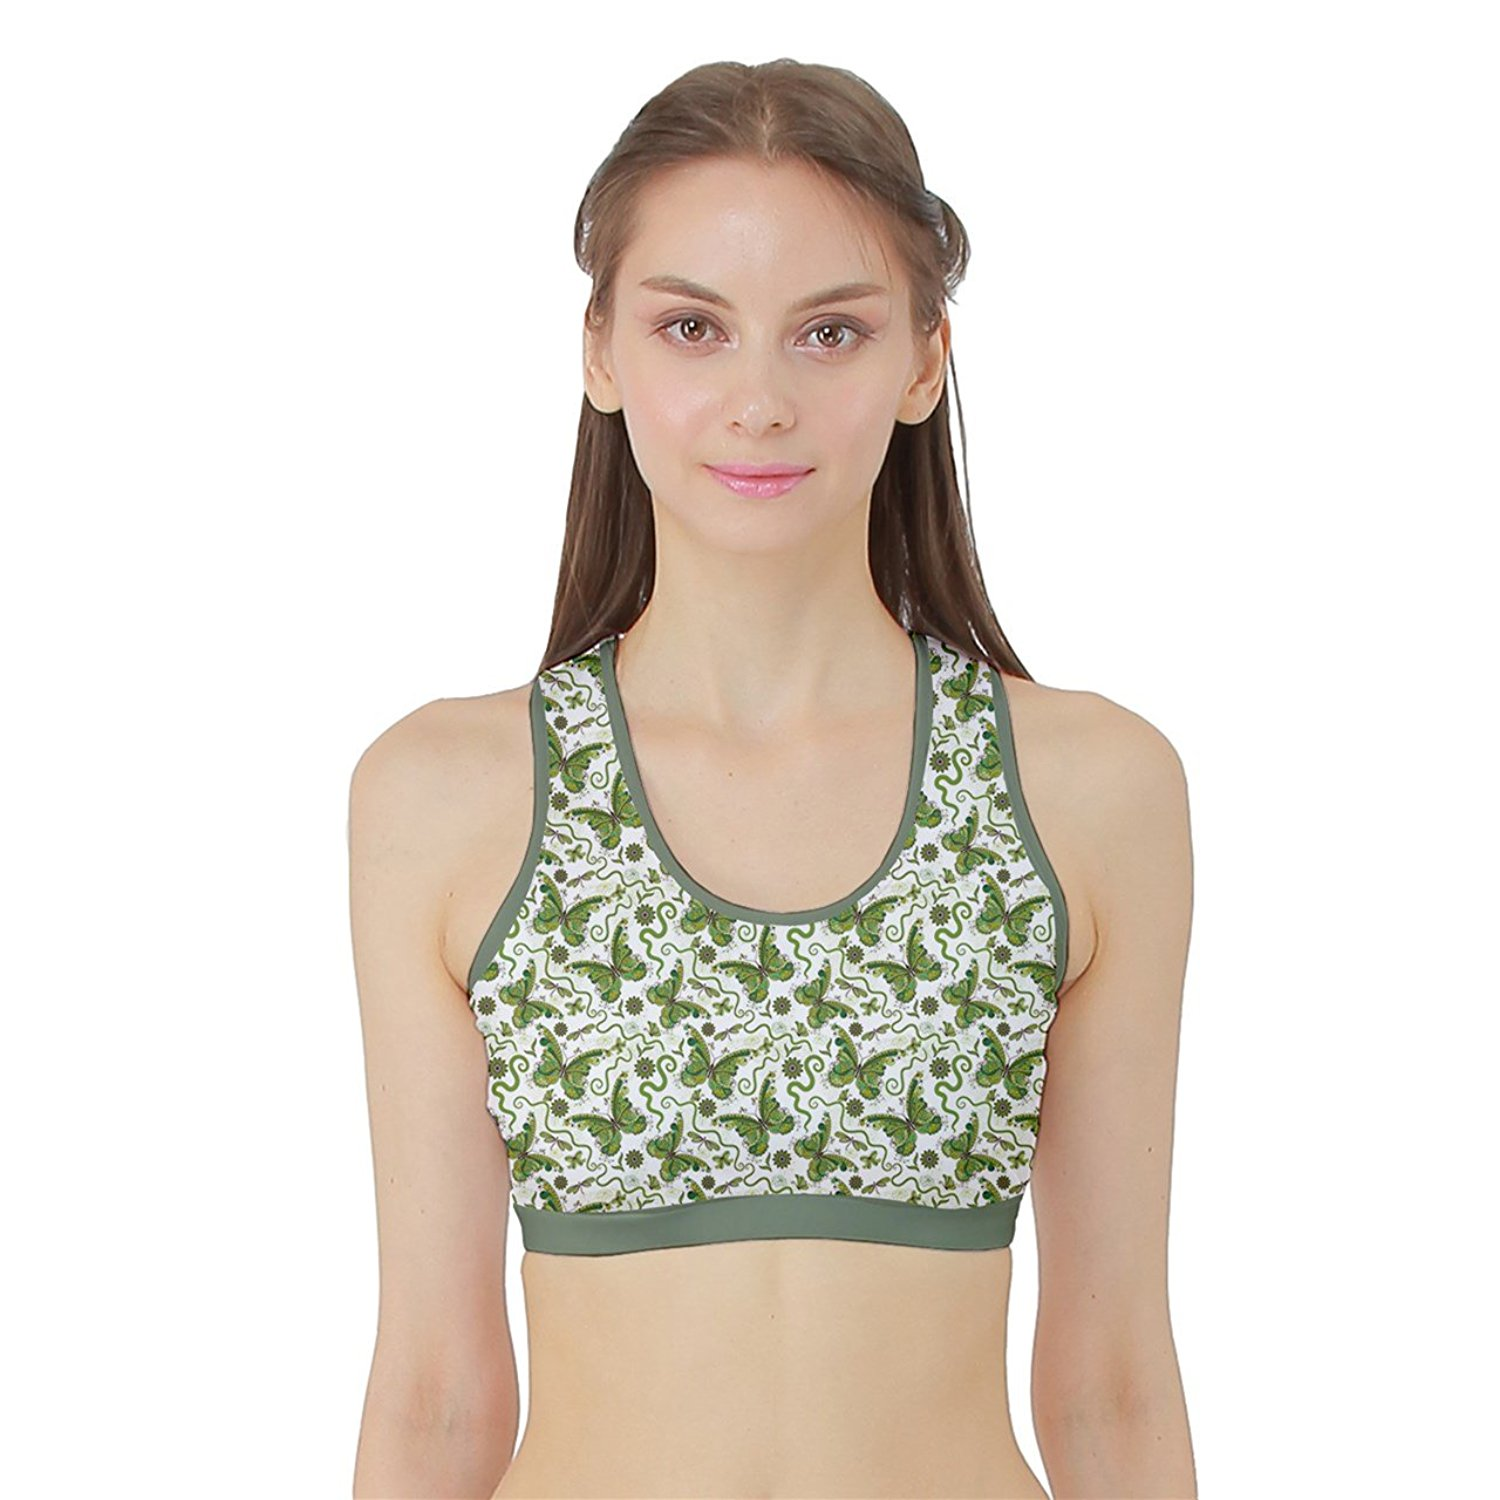 17thdreamer Womens Green Vintage Butterflies HOT Sports Bra With Border